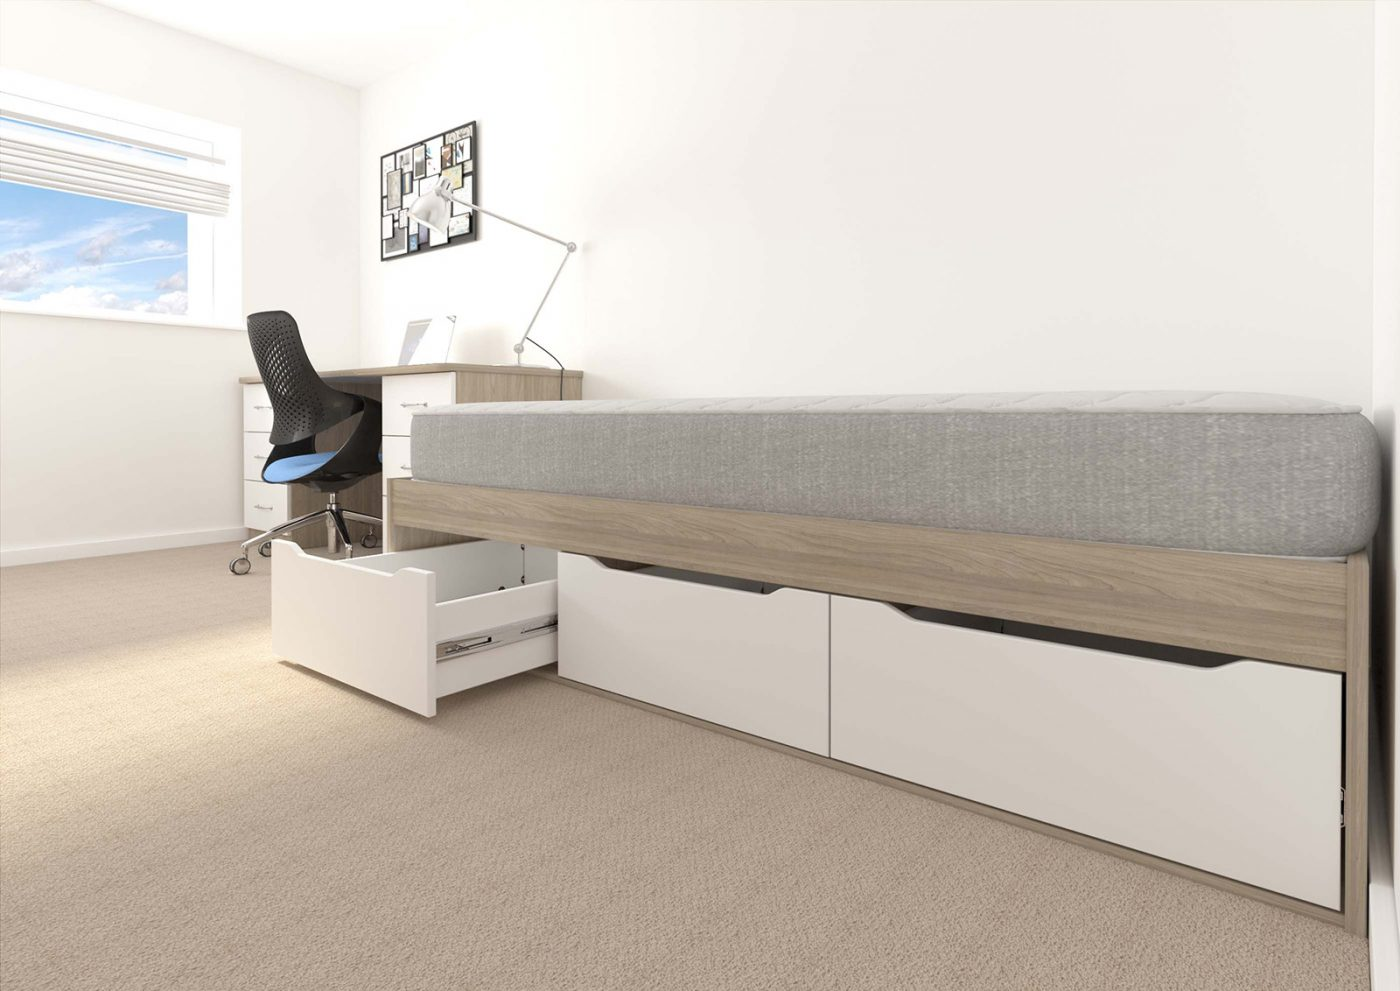 student accommodation furniture, bedroom furniture, residential furniture, under bed storage